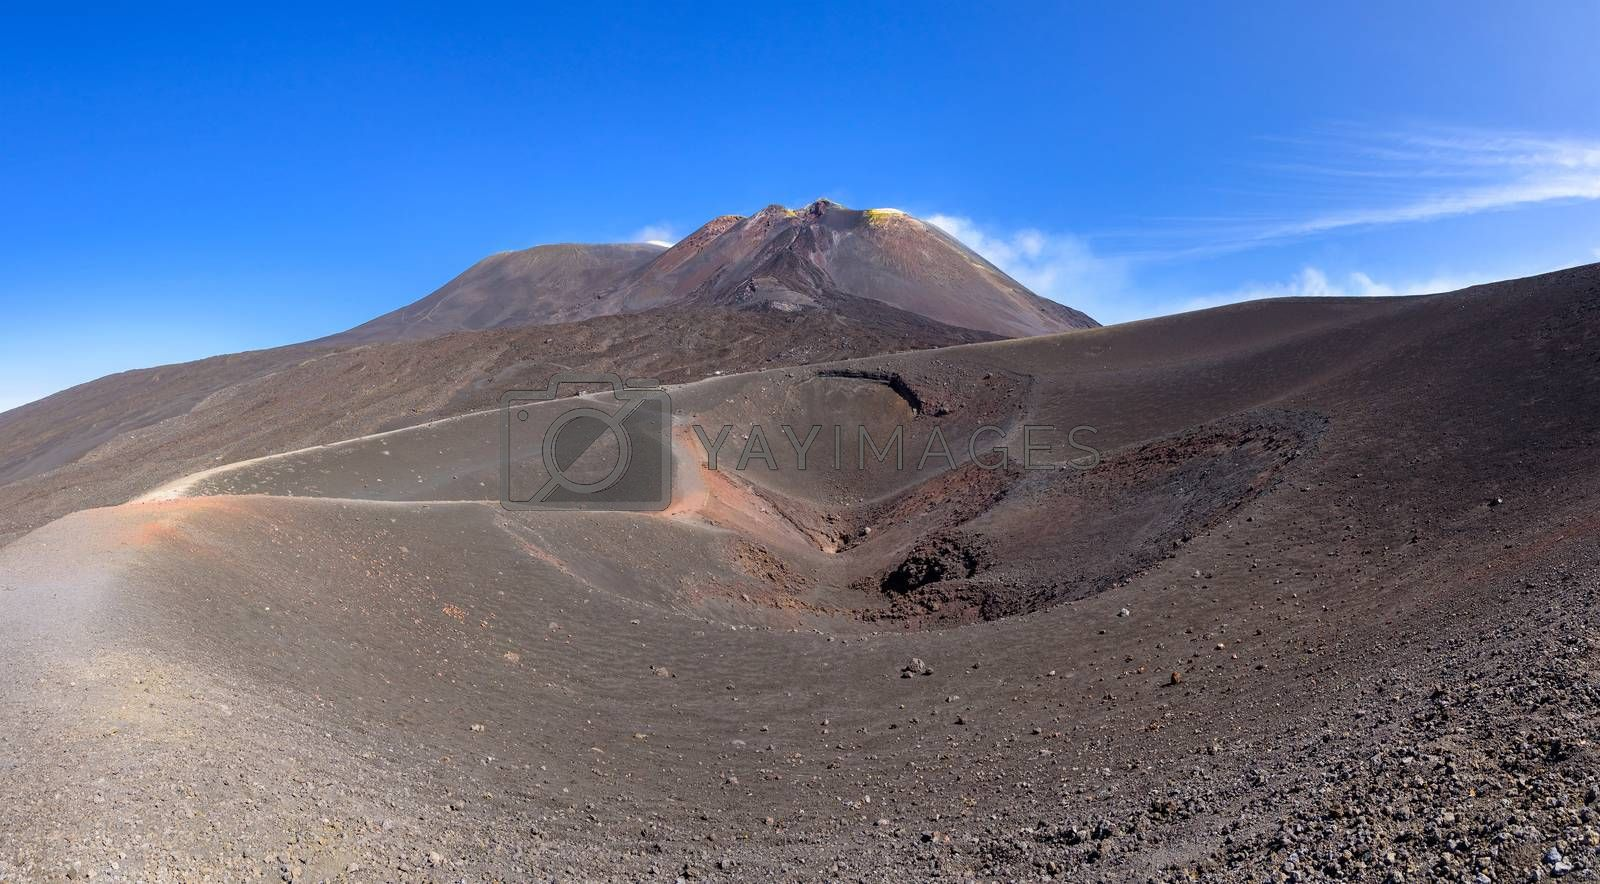 Panoramic view of Etna crater created by eruption in 2002 with main craters in the background, Sicily, Italy